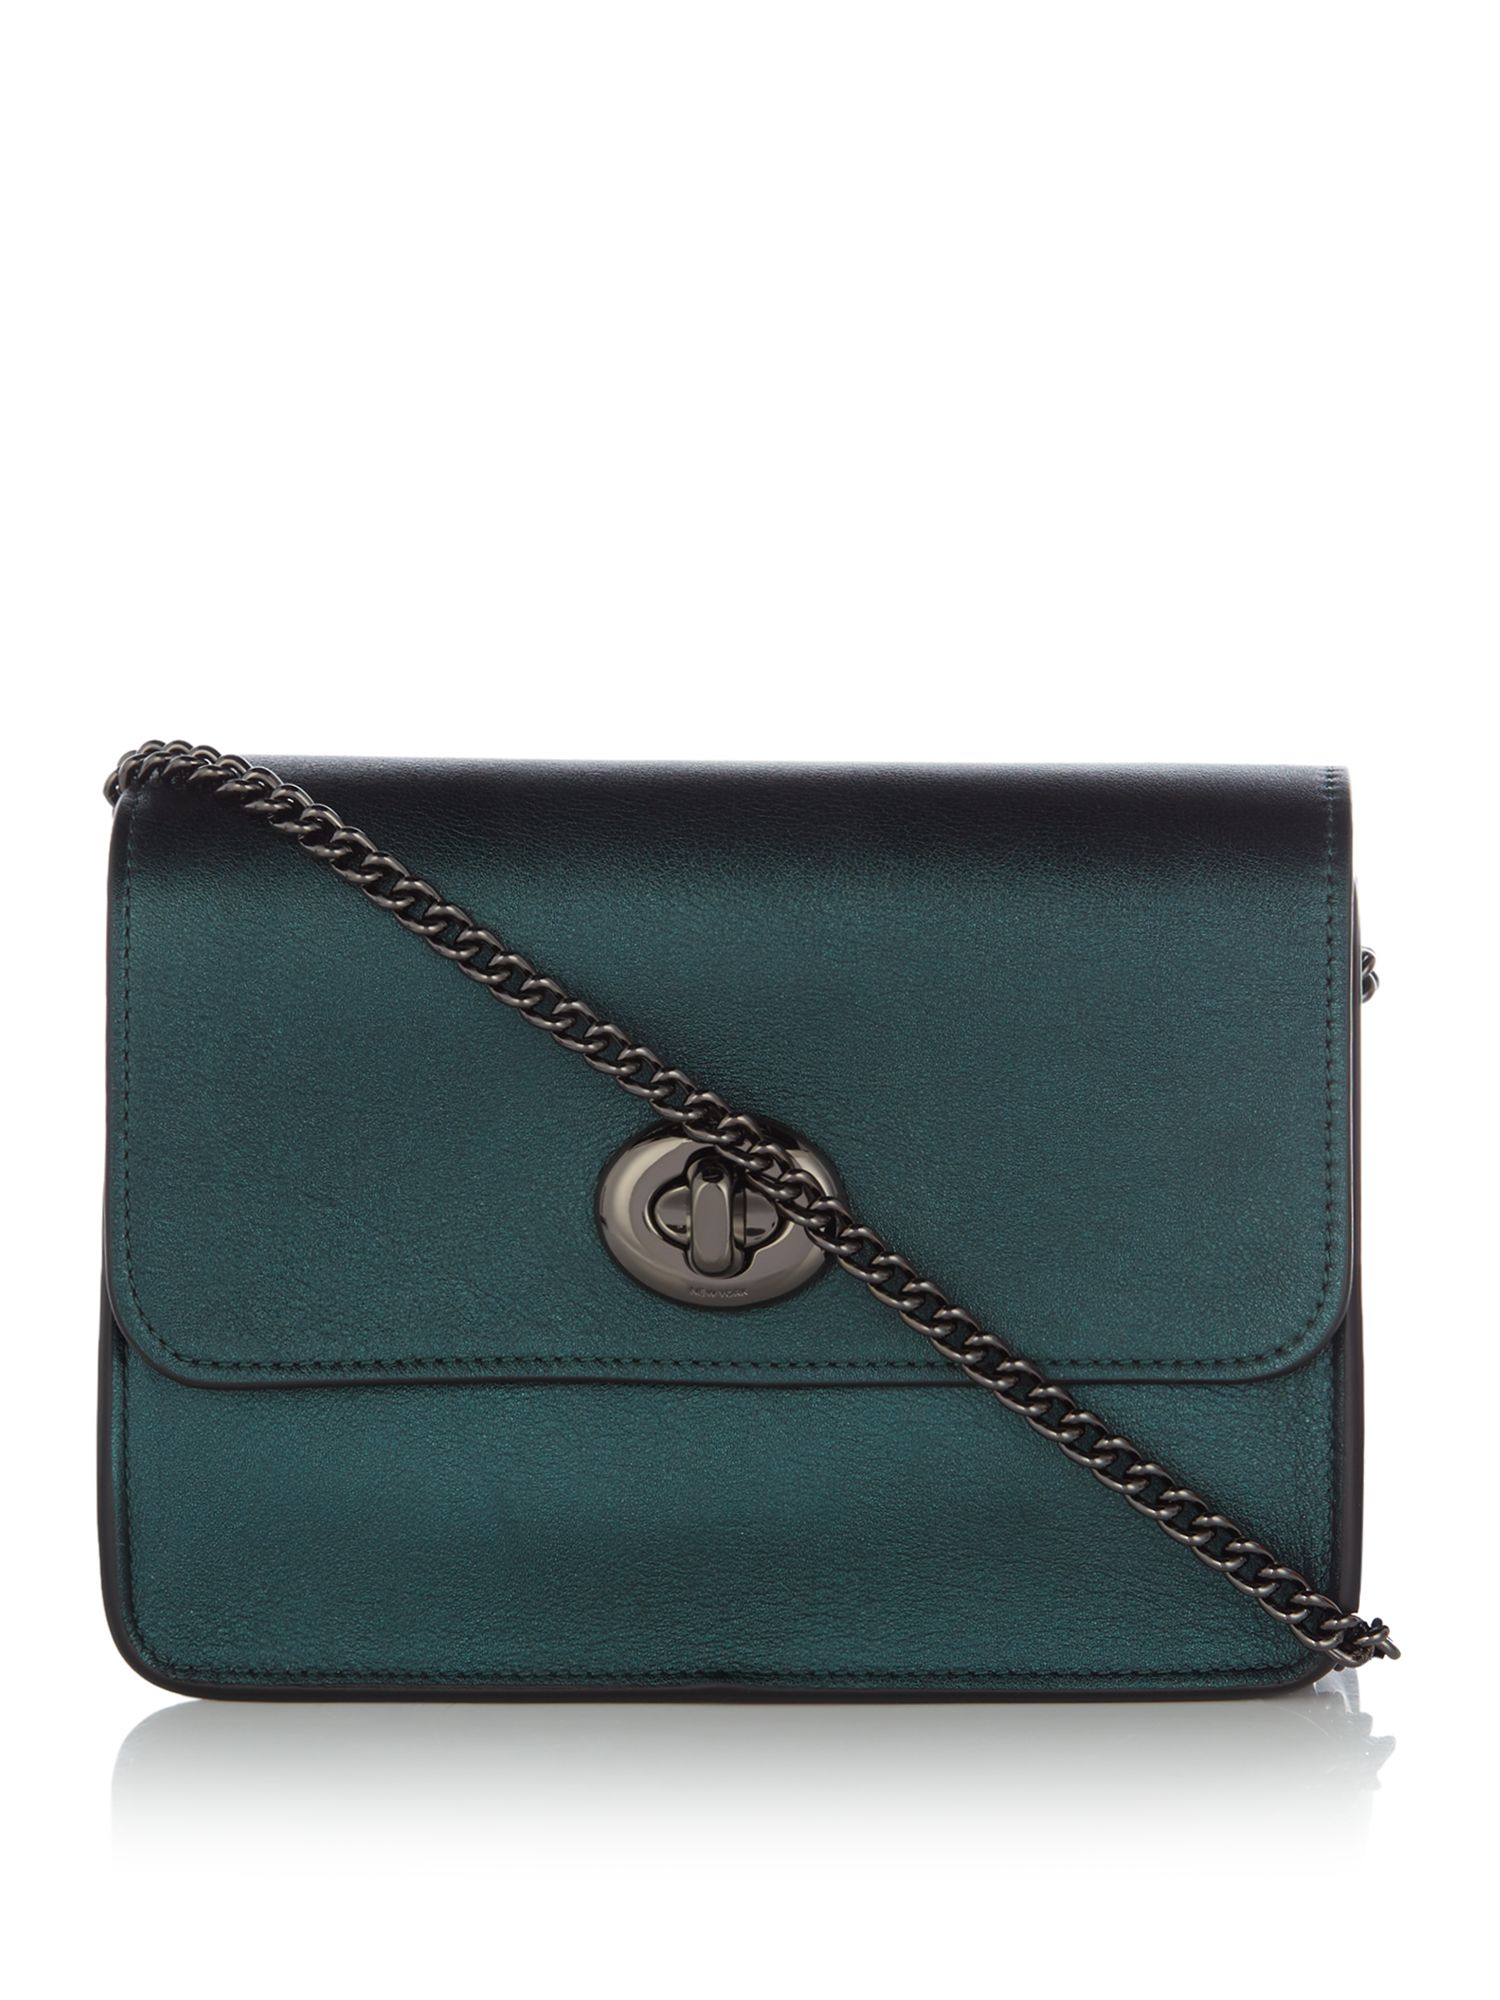 Coach Bowery crossbody bag, Green